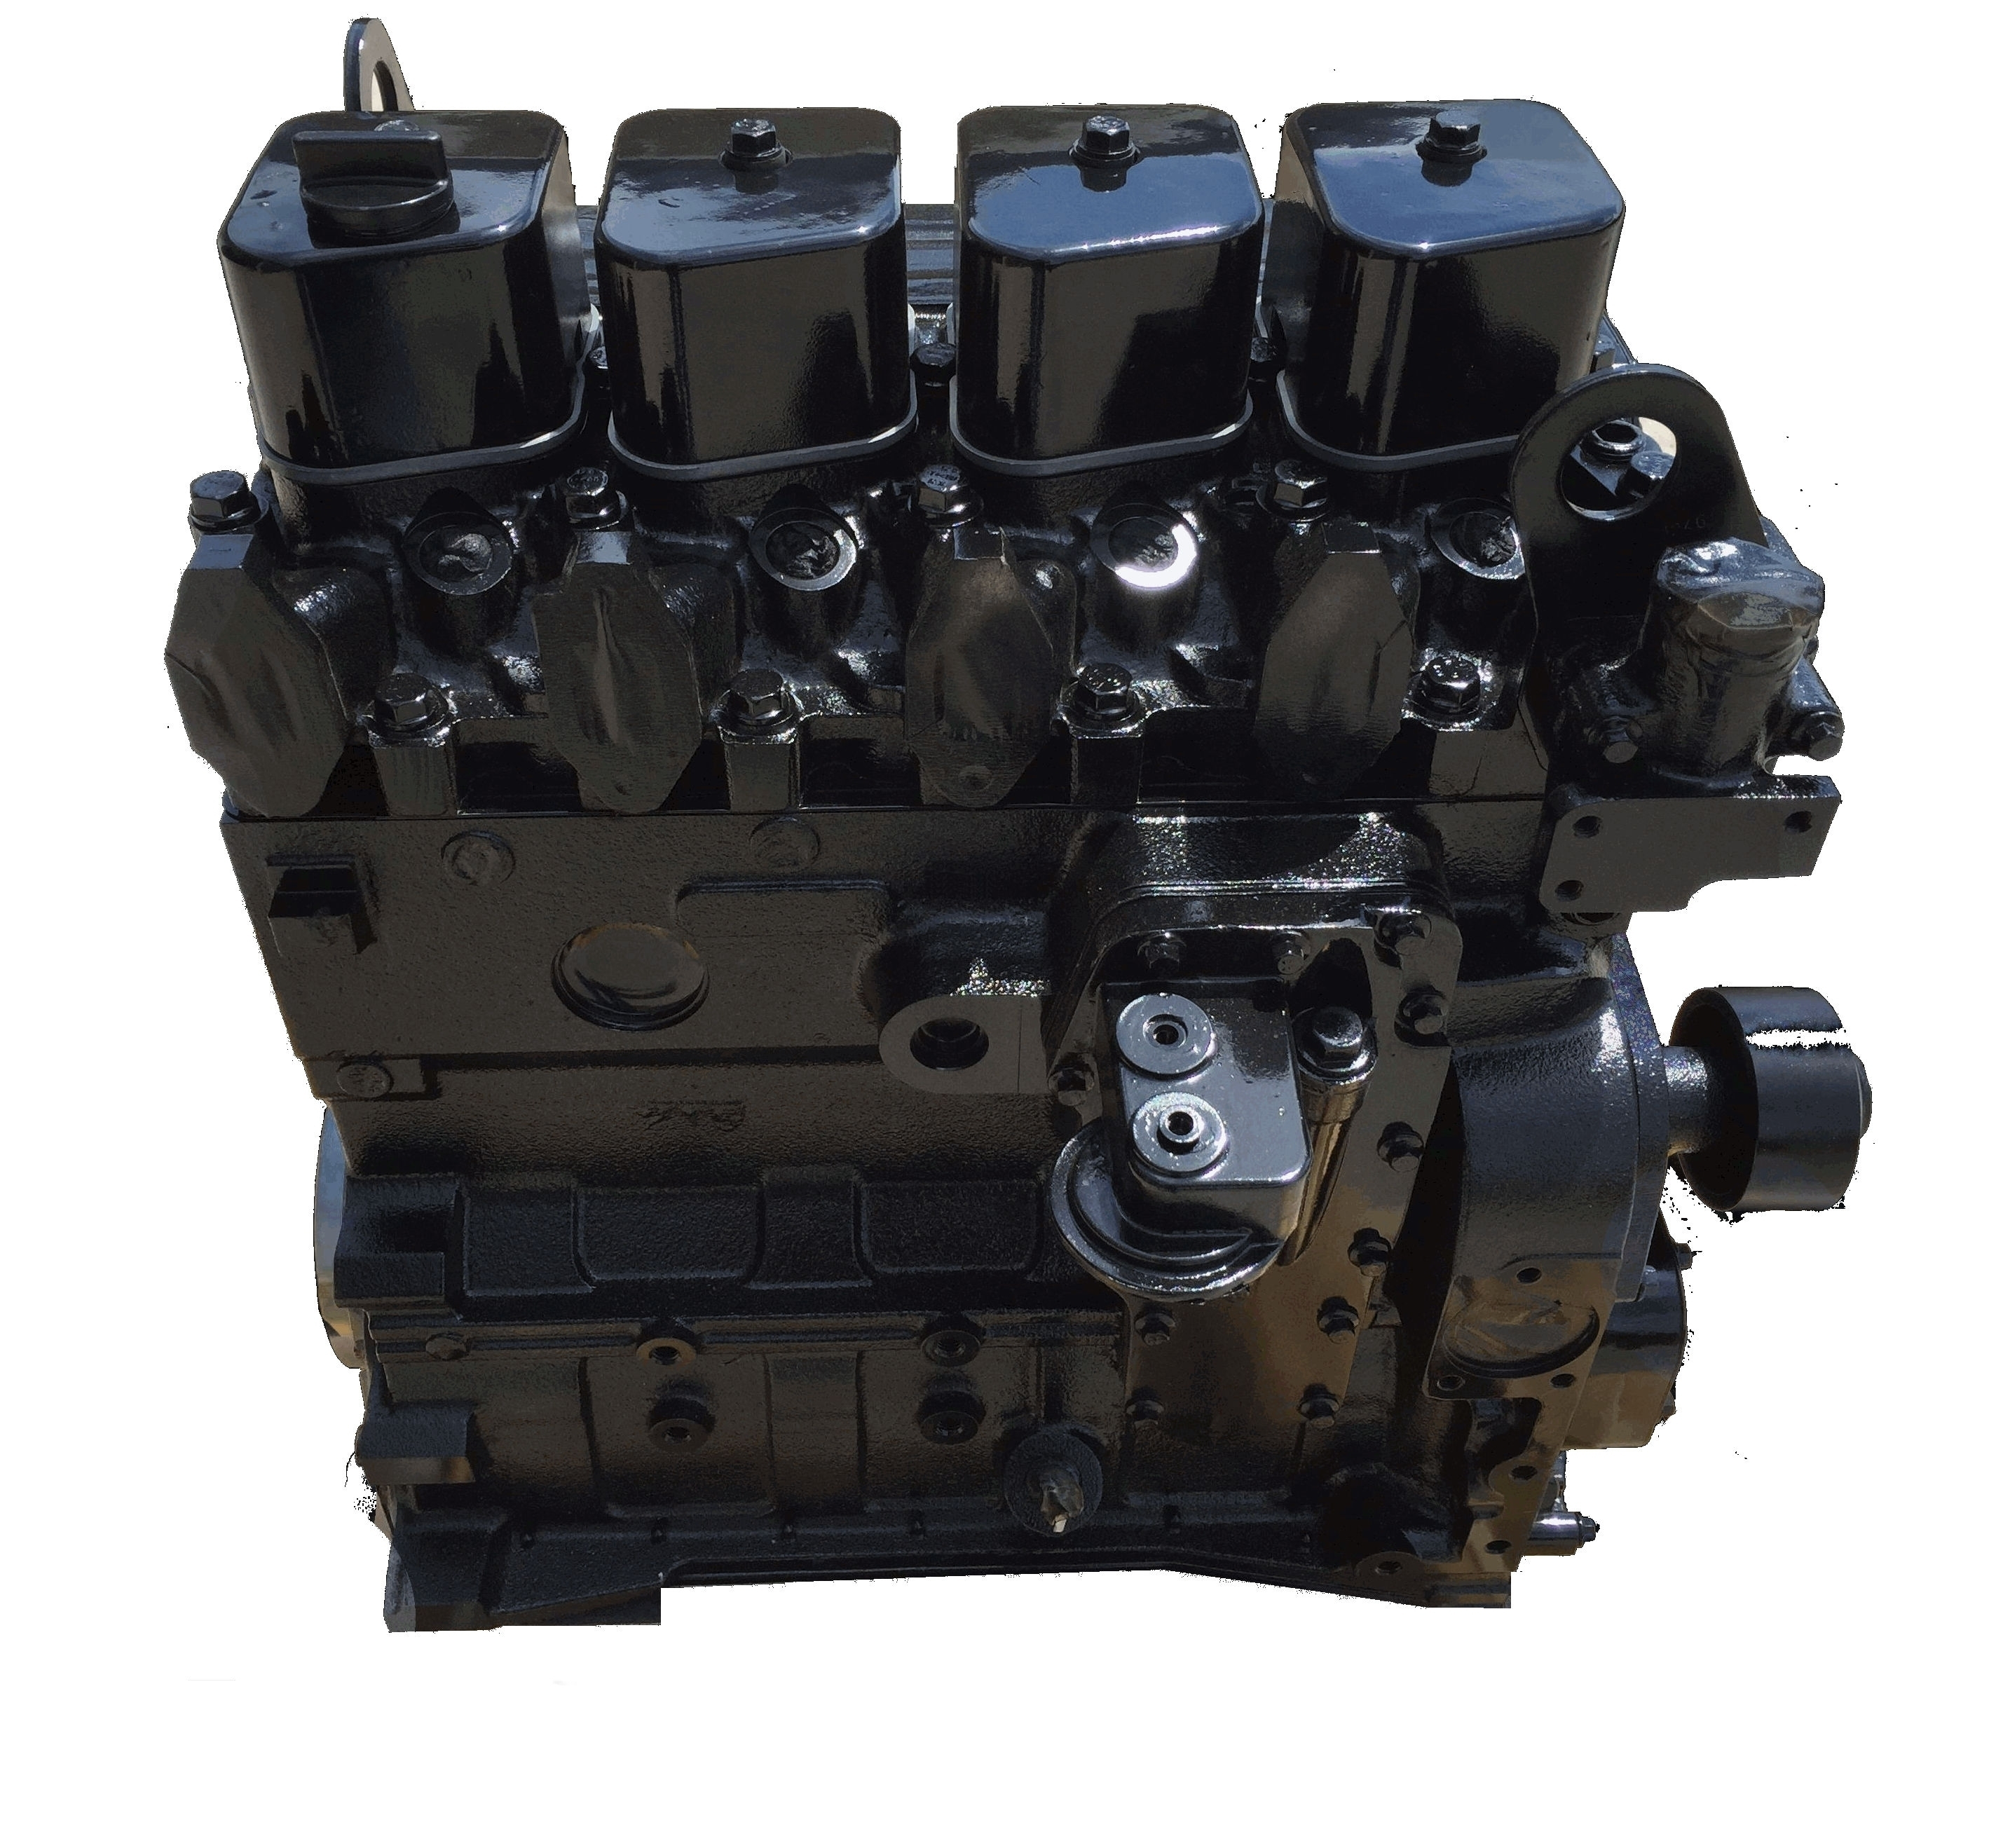 Cummins ISF 2.8 Long Block Engine For ISF - Reman